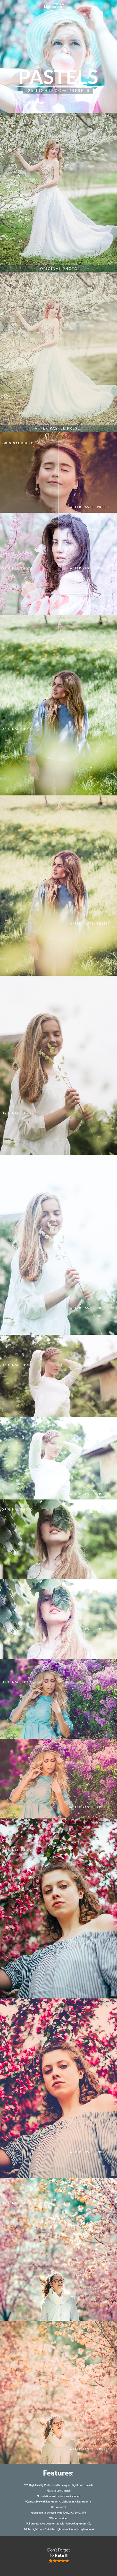 25 Pastel Lightroom Presets